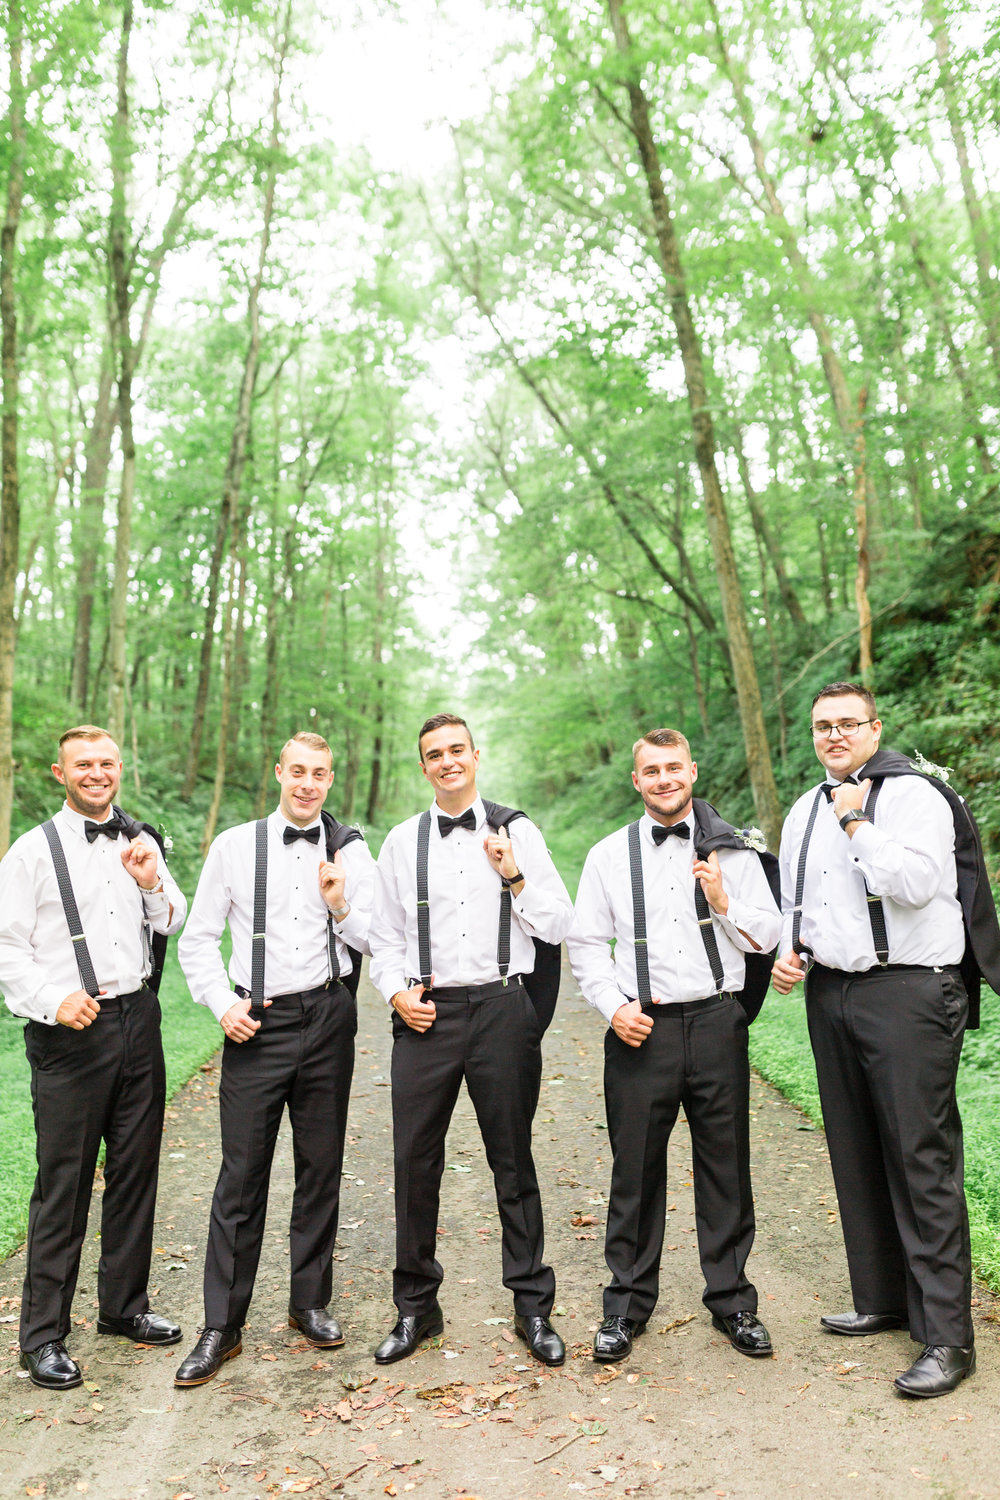 Groom and groomsmen take wedding photos in classic black tuxedos for Pittsburgh wedding planned by Exhale Events. Find more wedding inspiration at exhale-events.com!